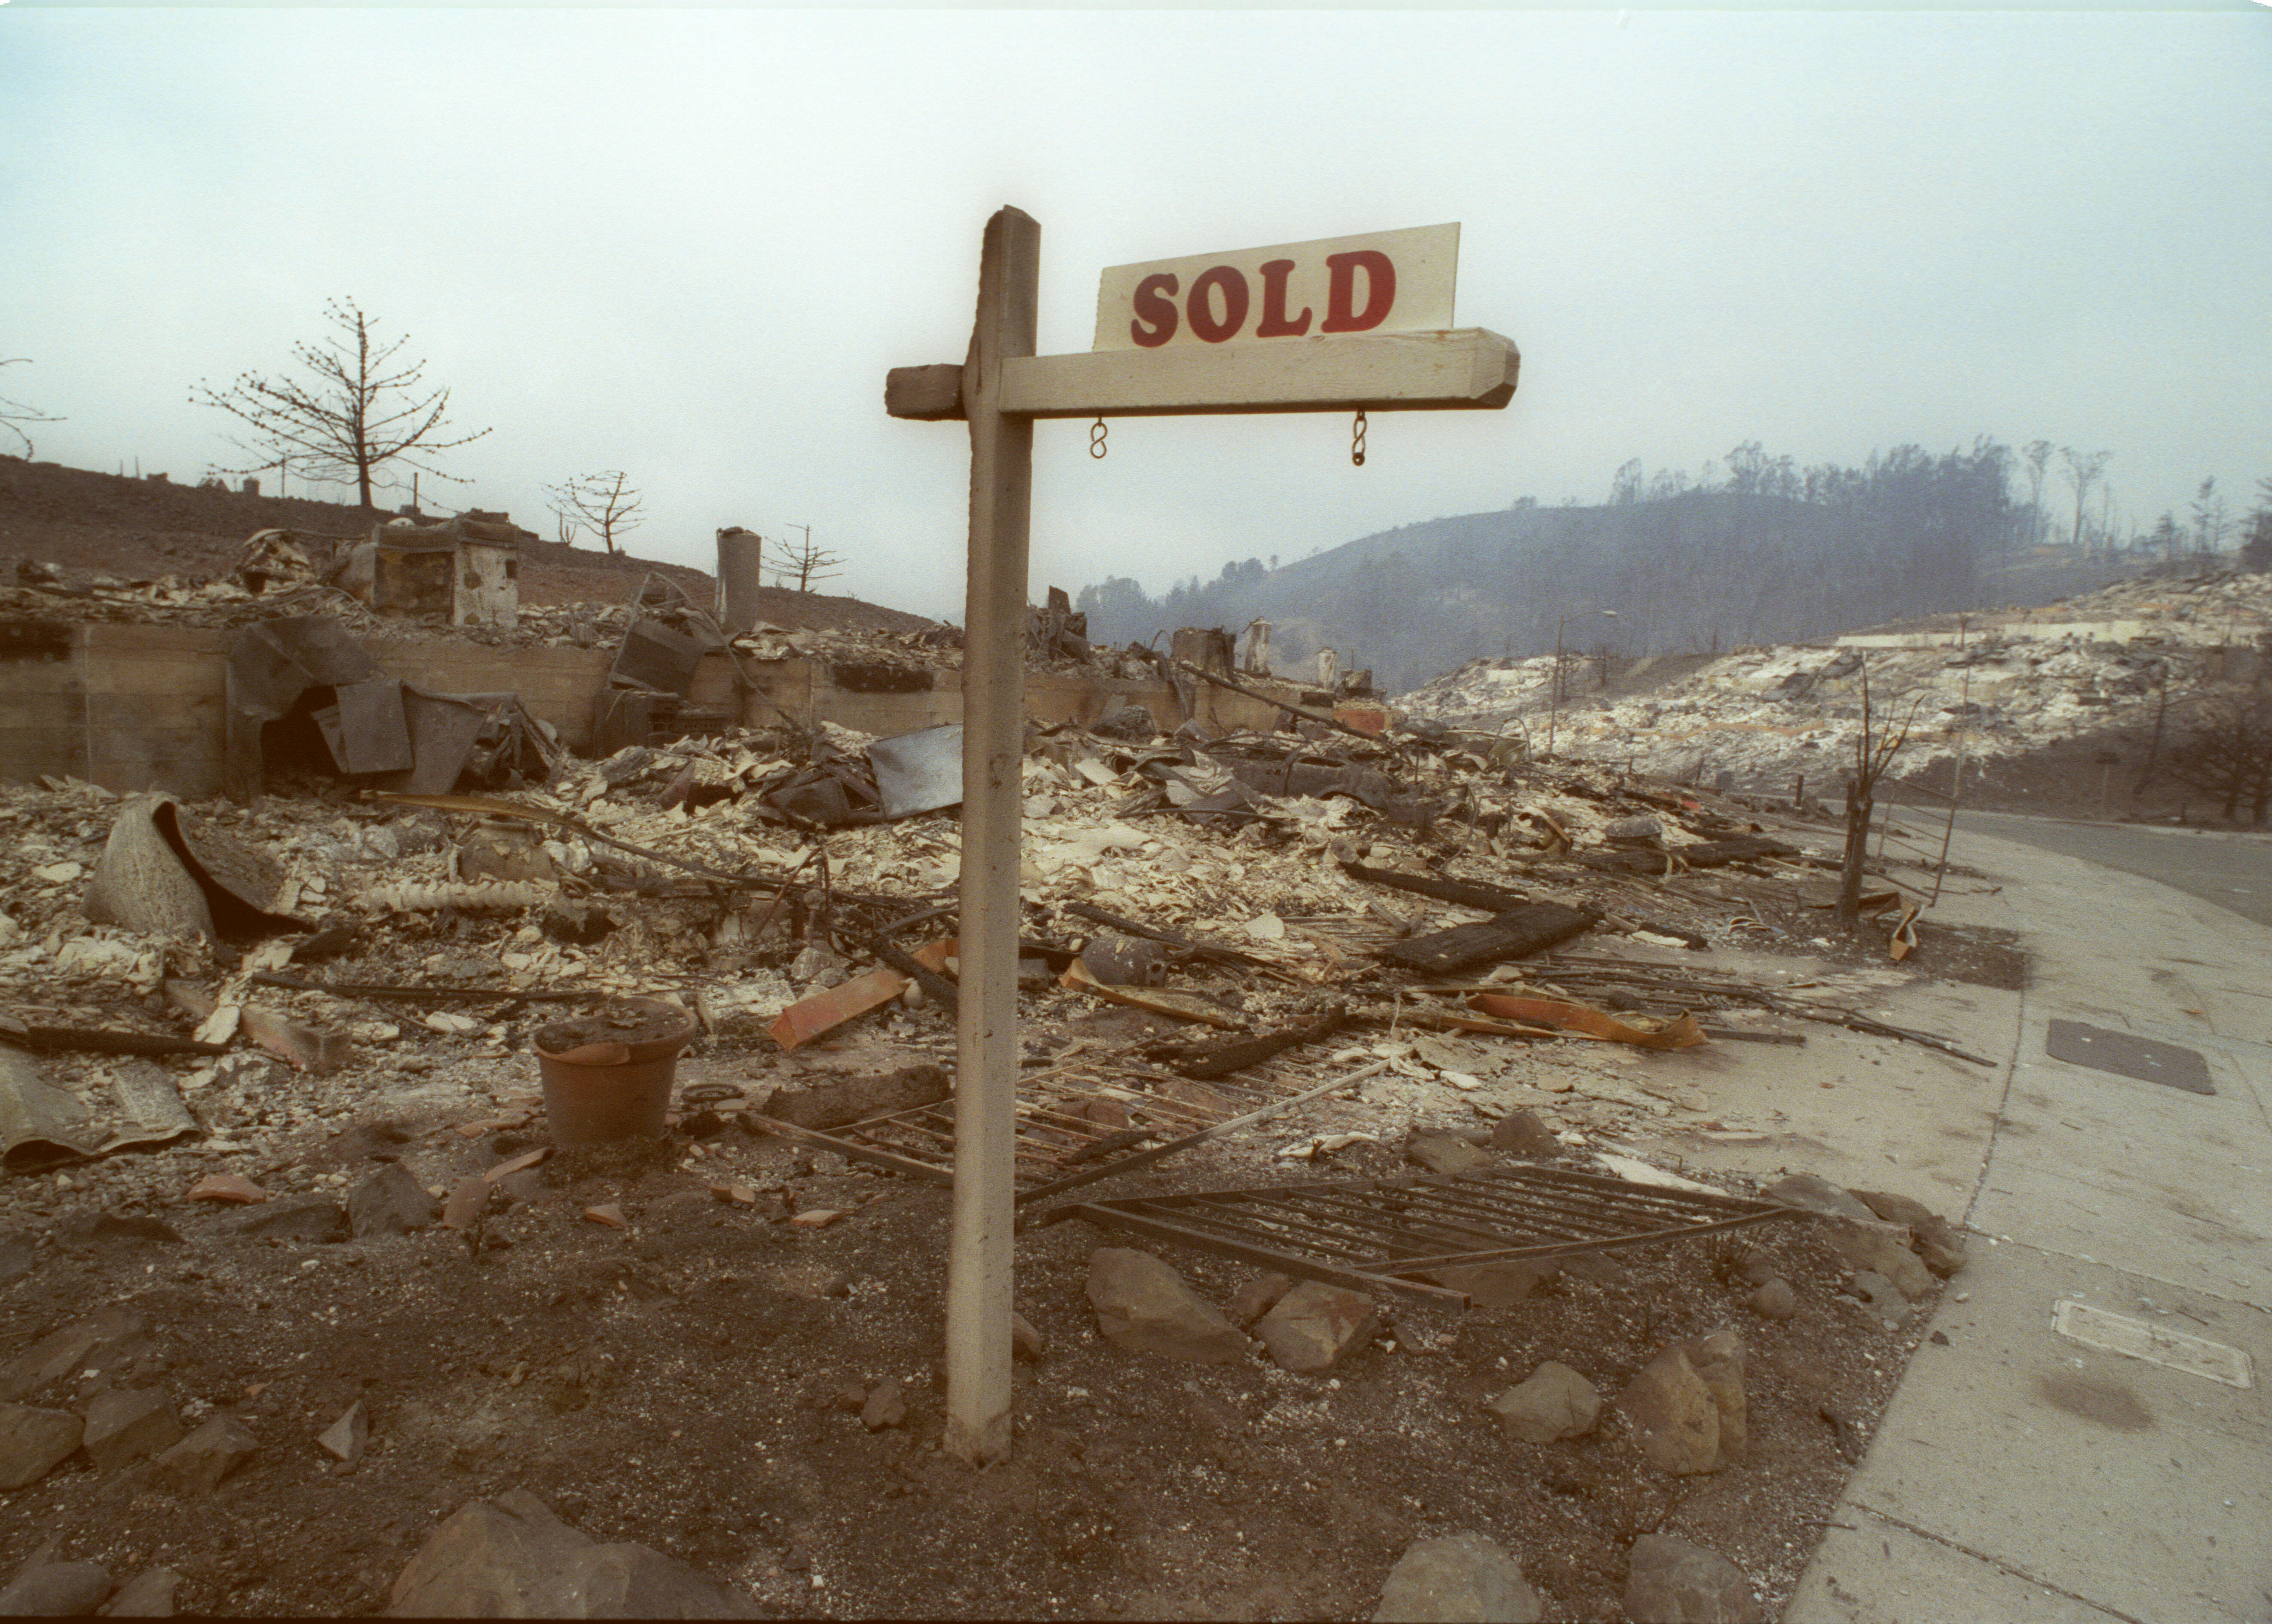 1991-oakland-fire-getty-images